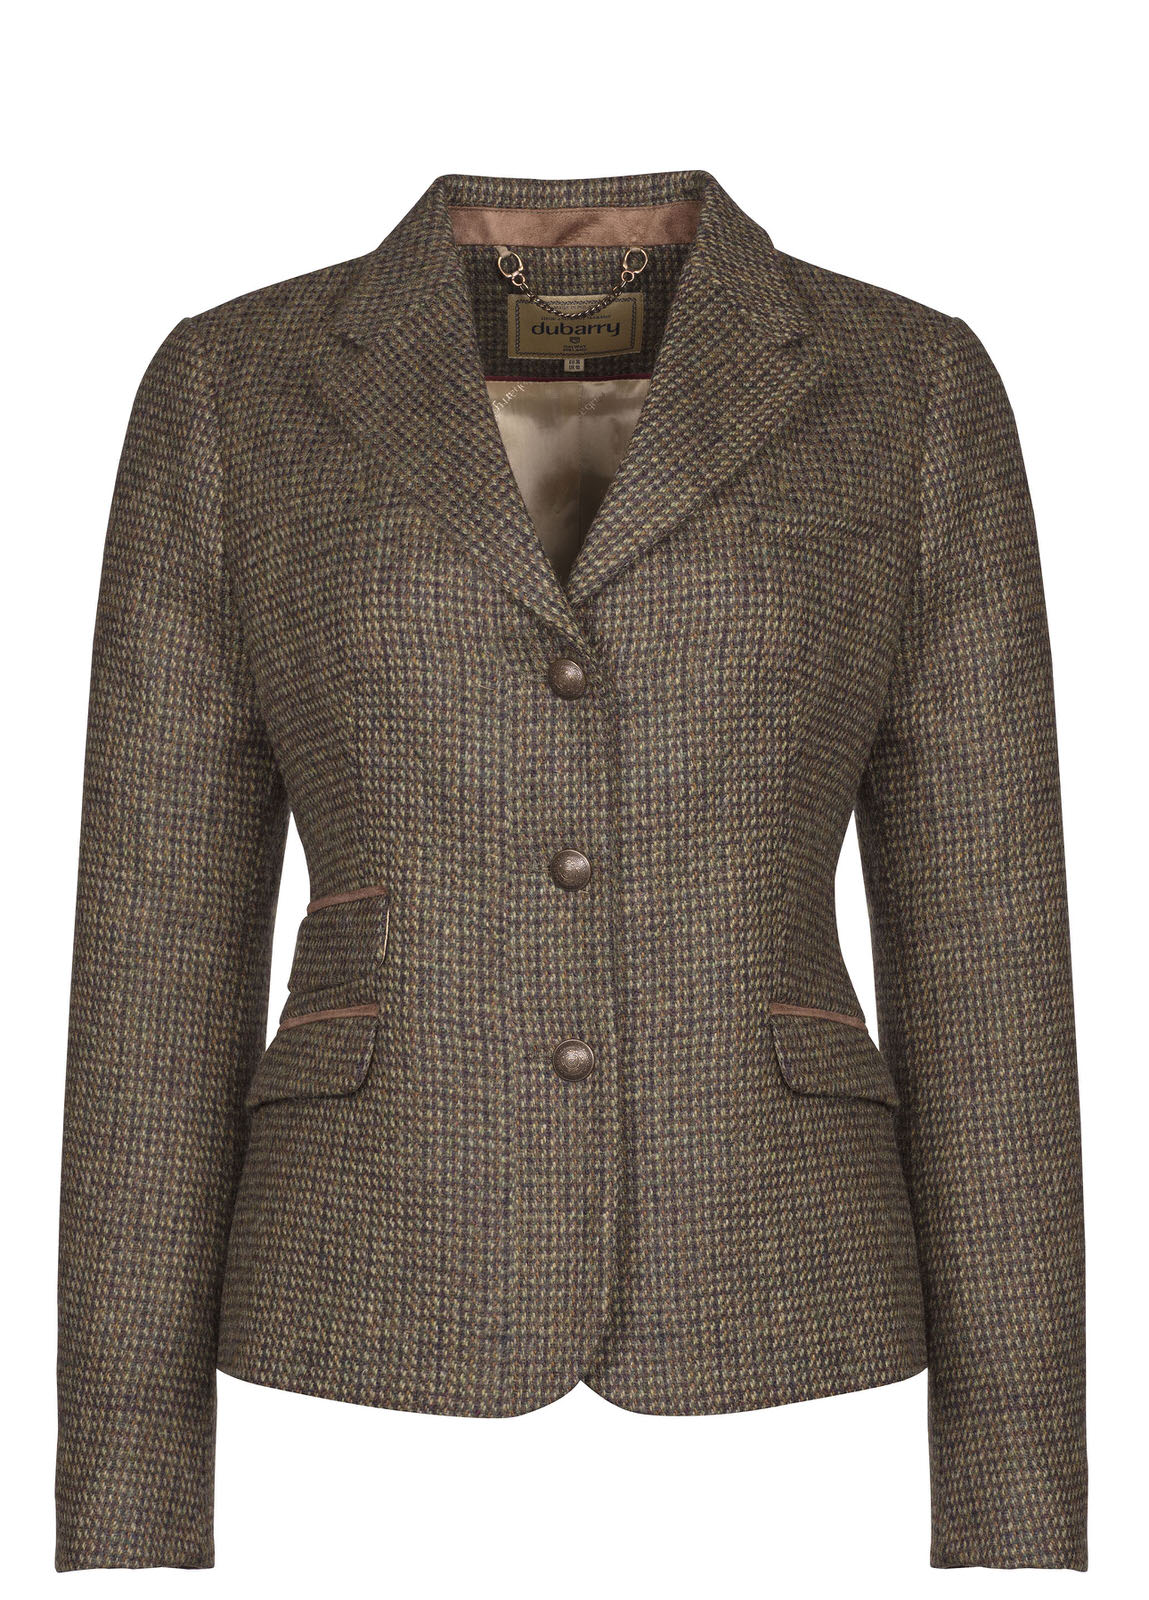 Buttercup_Tweed_Jacket_Heath_Image_1